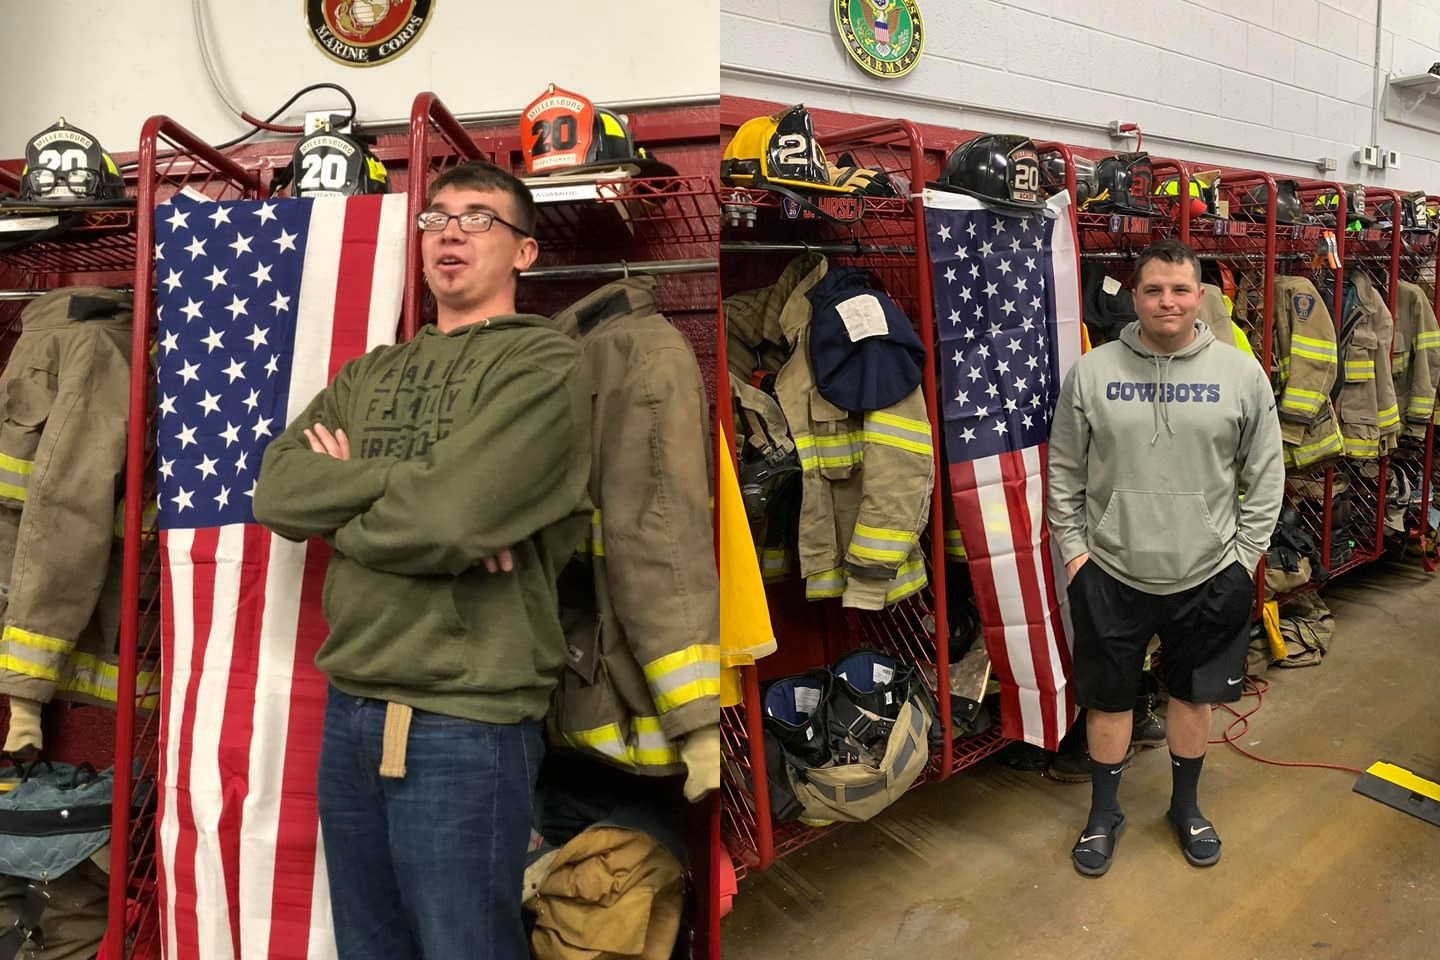 Millersburg Pa Halloween Parade 2020 Millersburg Fire Company honors members serving in the military